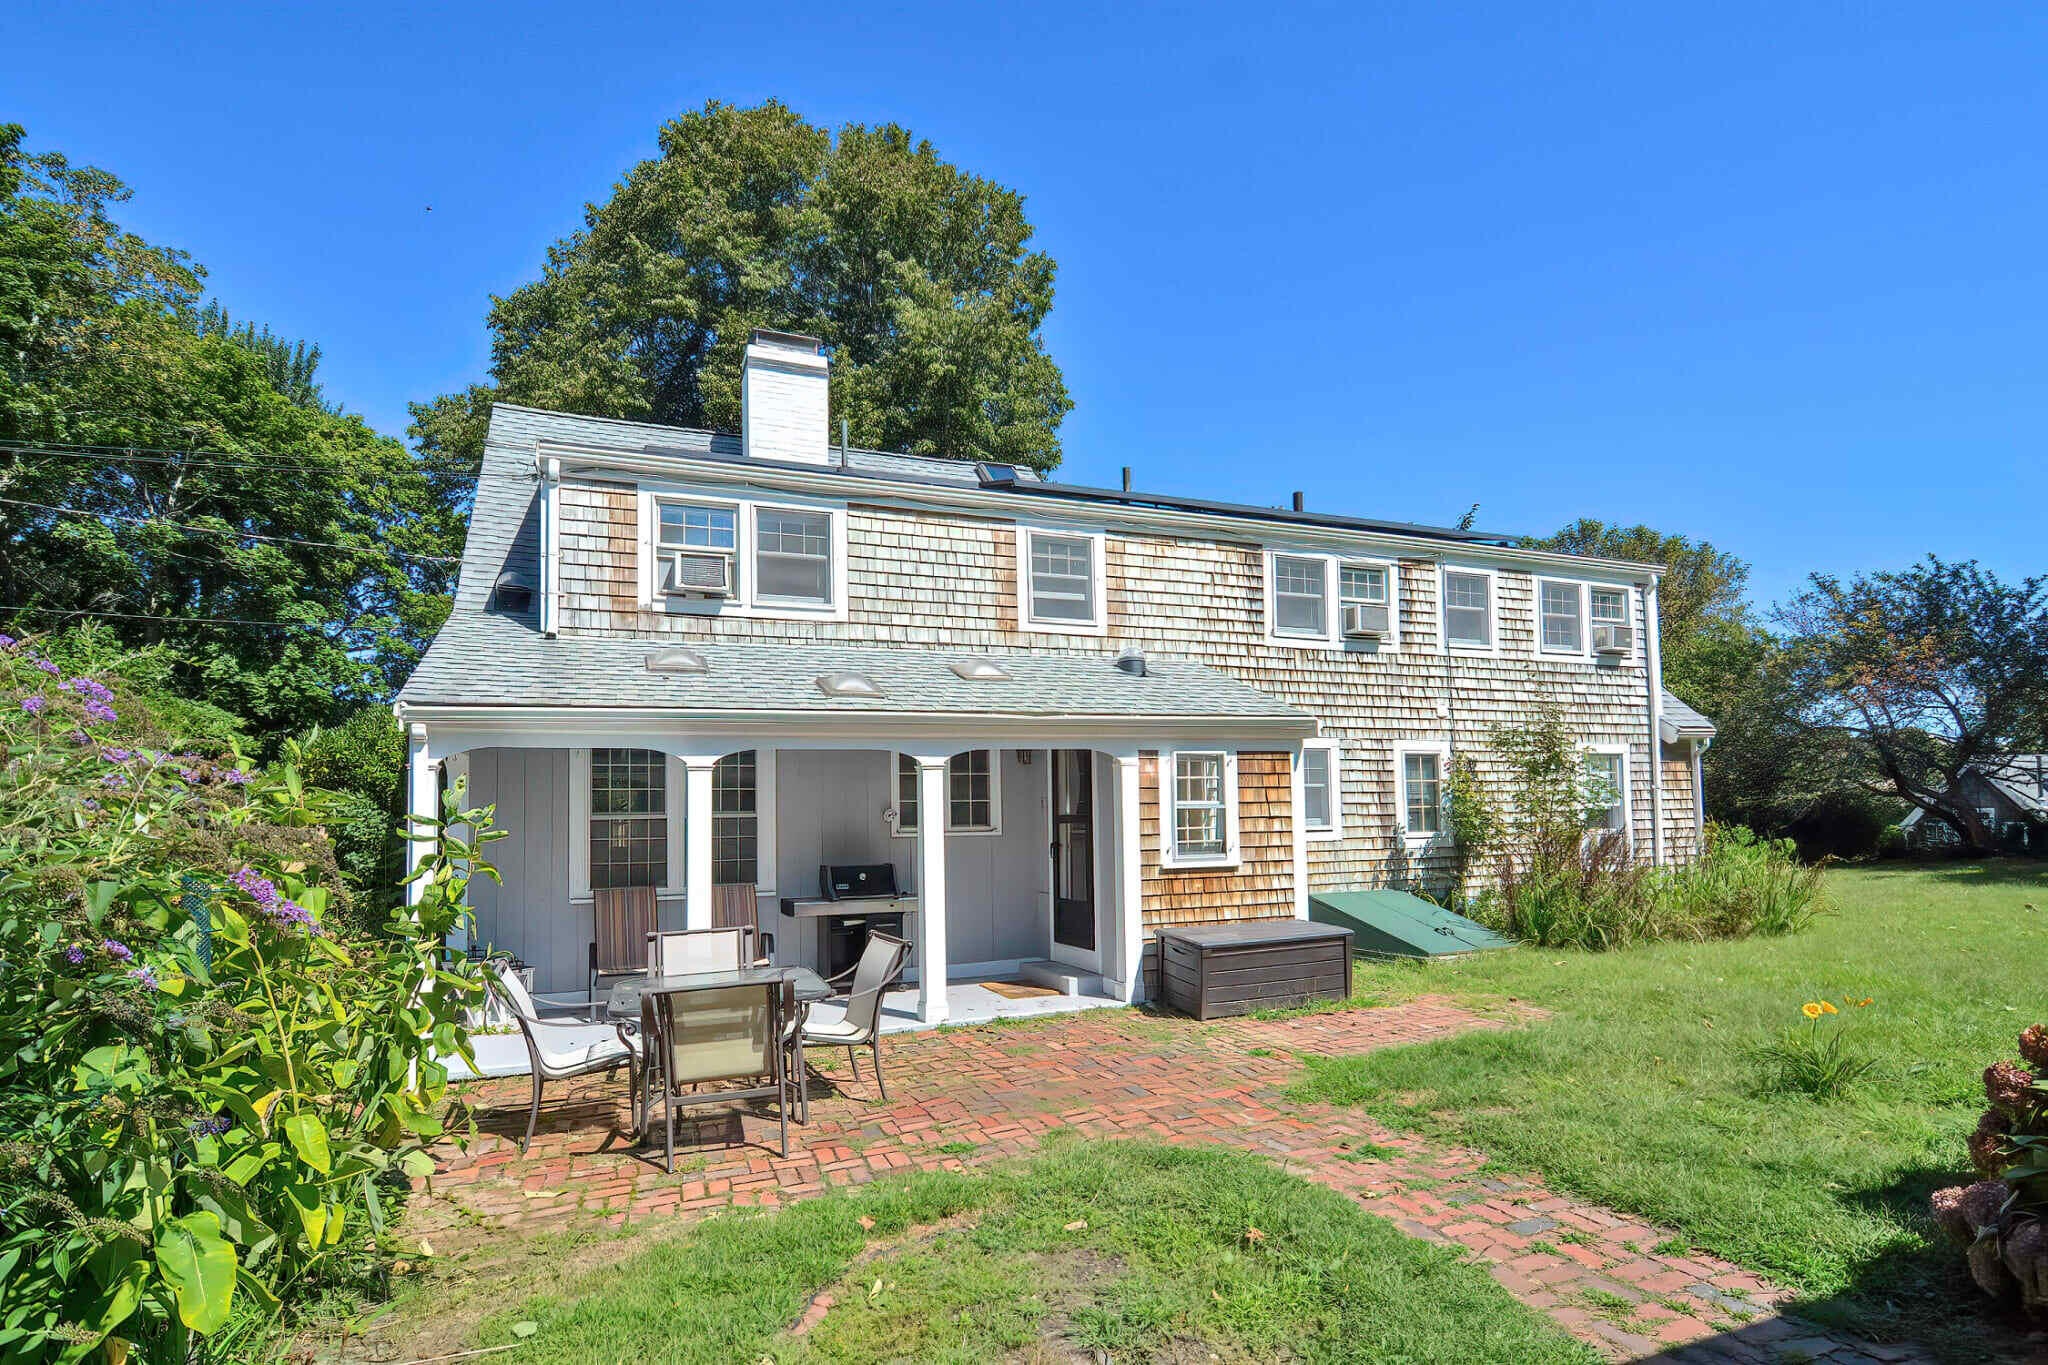 1 Route 6A Yarmouth Port MA, 02675 details